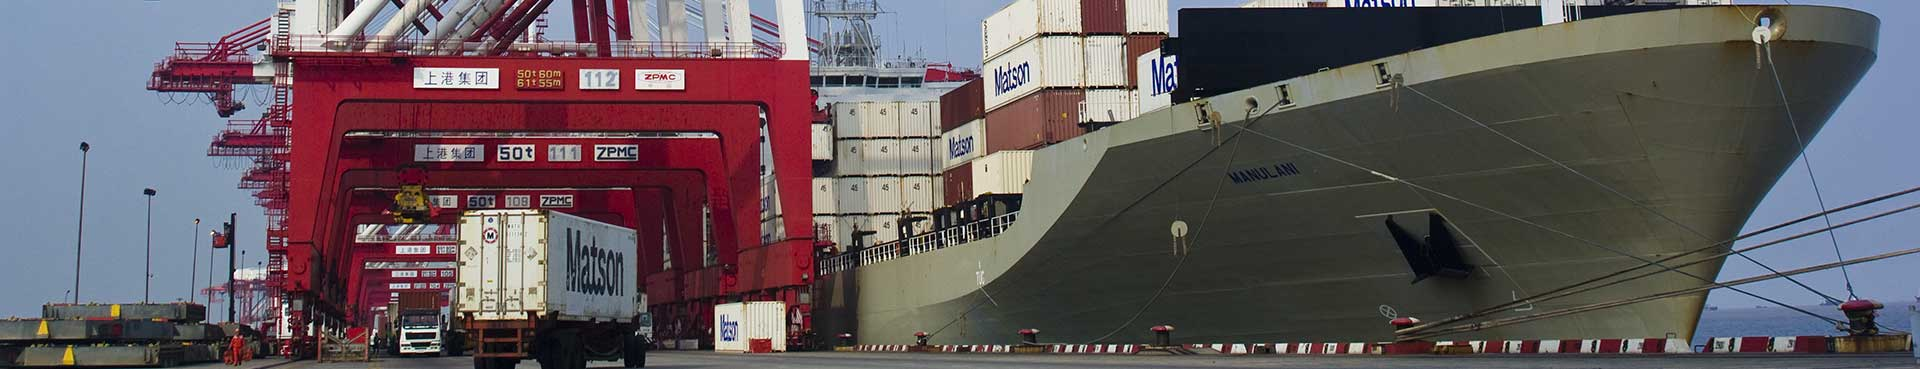 Matson containership Manulani at terminal shipping from China